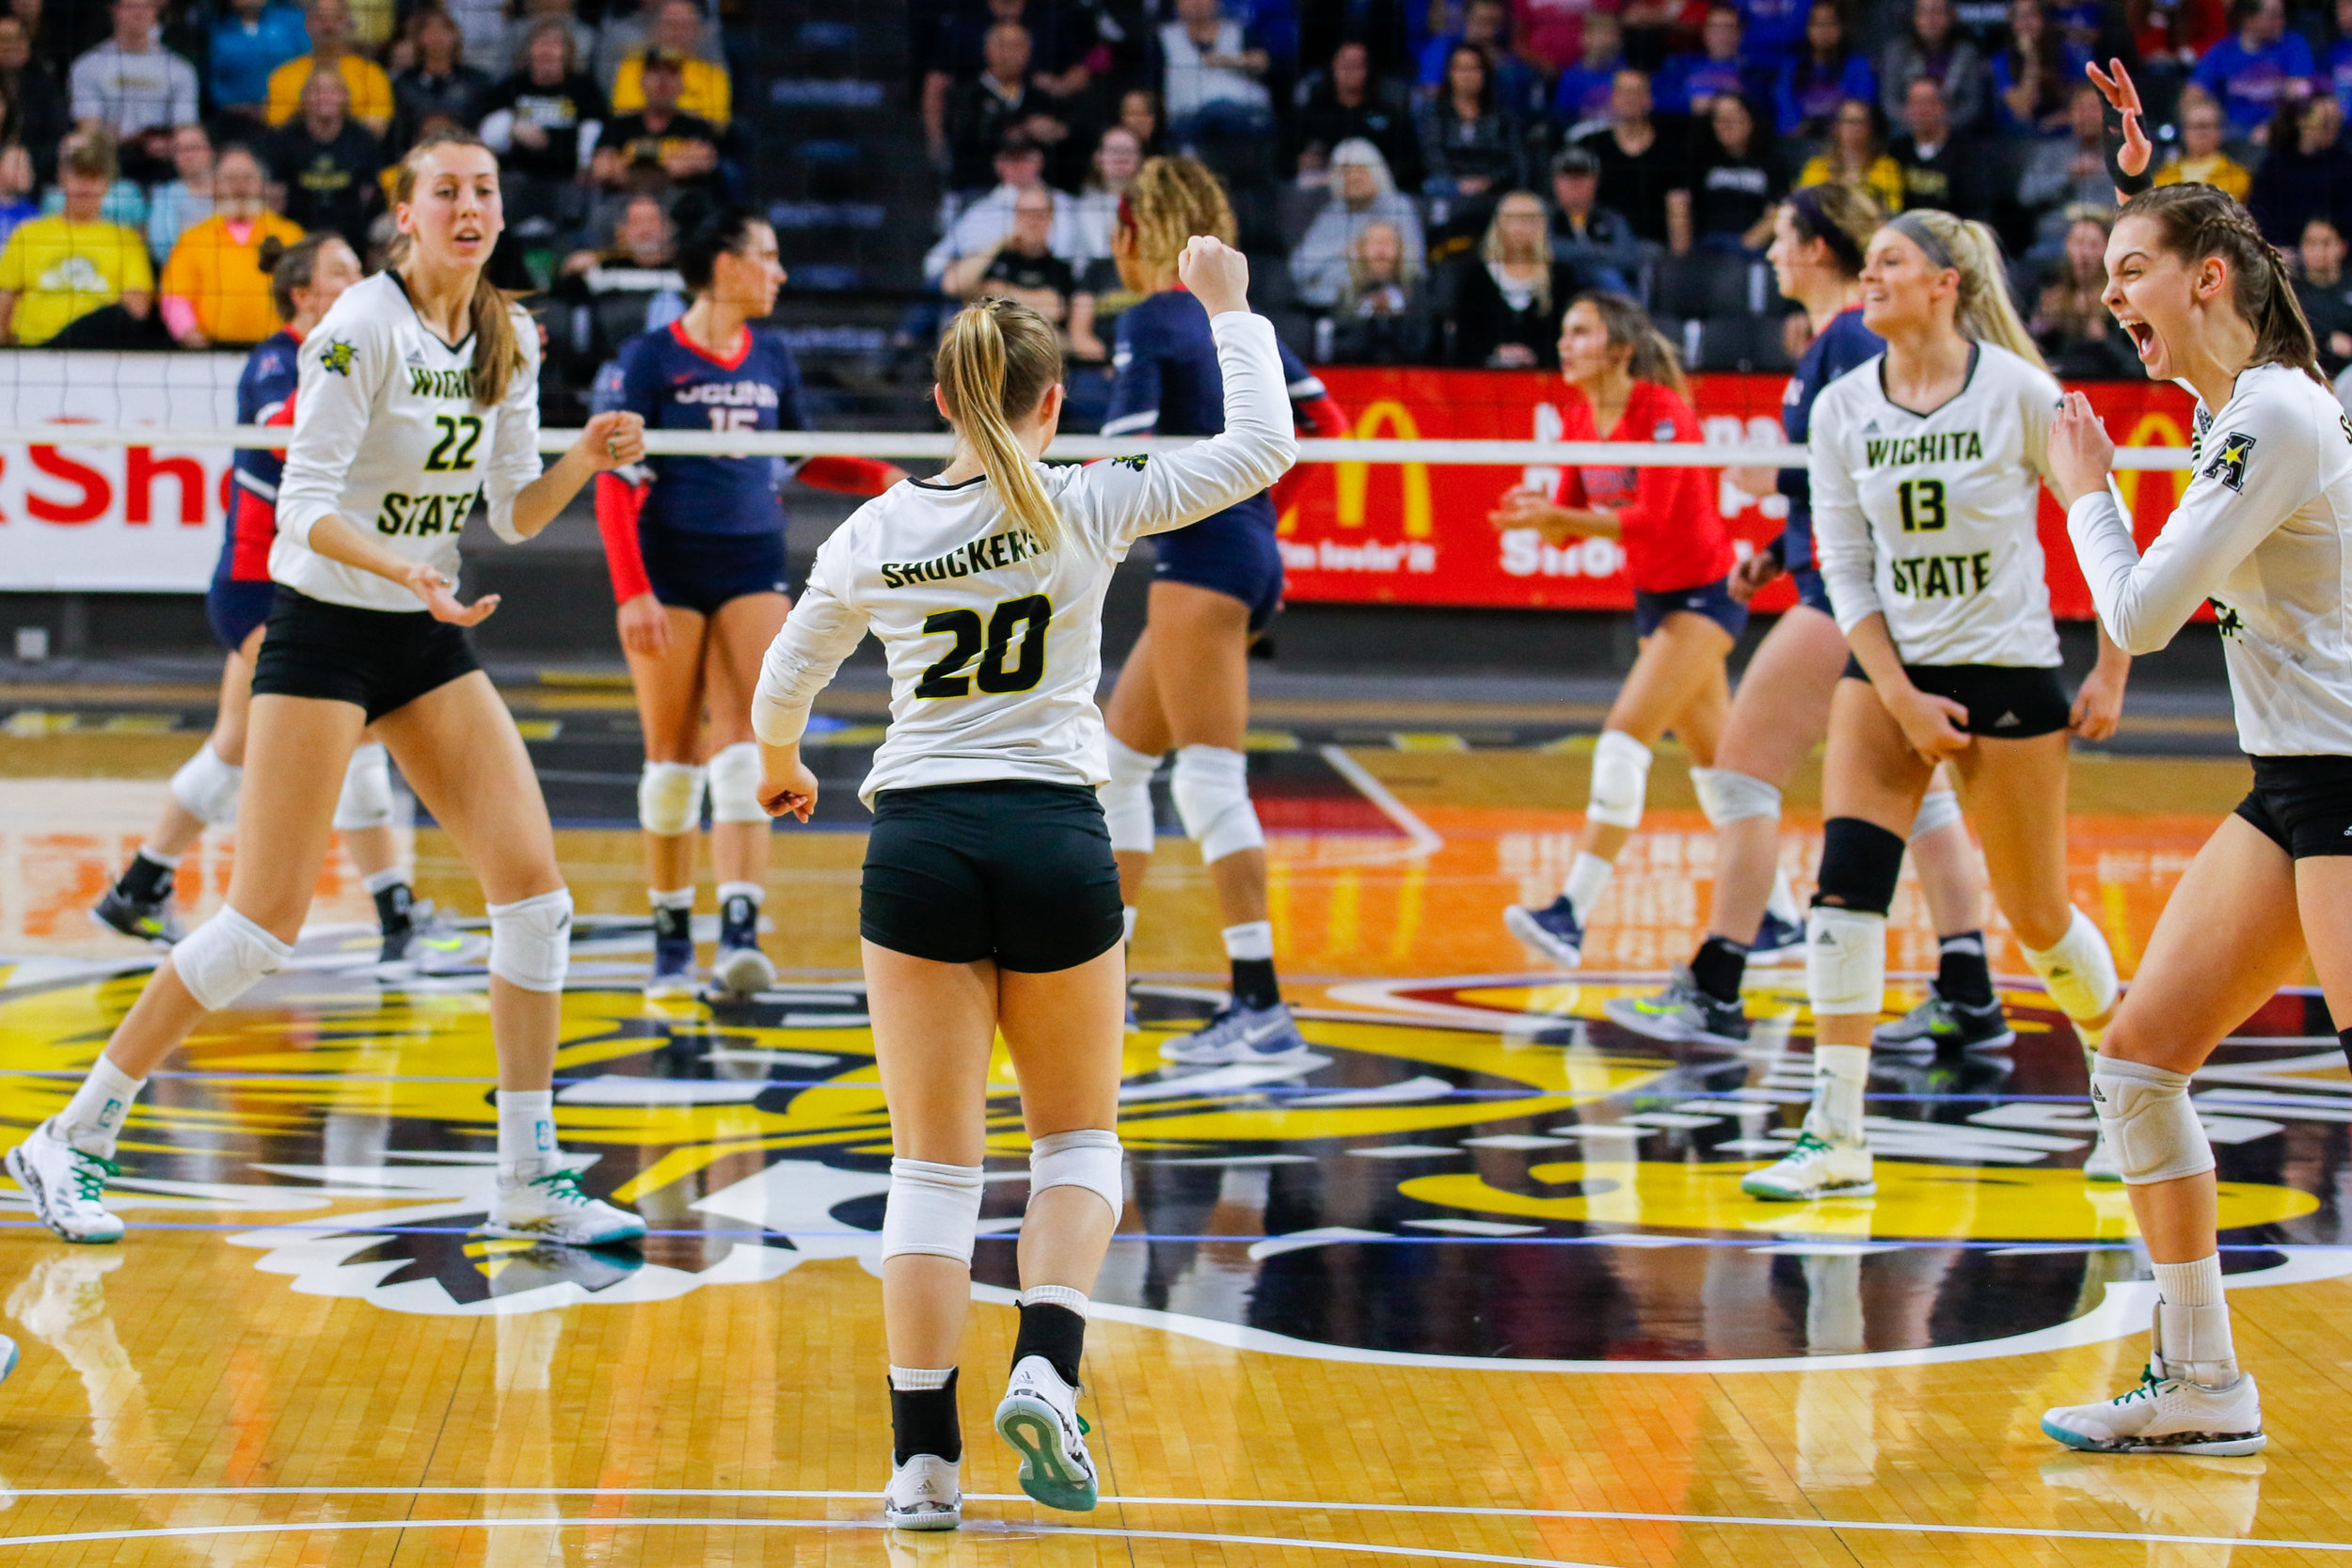 Wichita State celebrates after winning a point against UConn on November 3, 2017 at Charles Koch Arena.